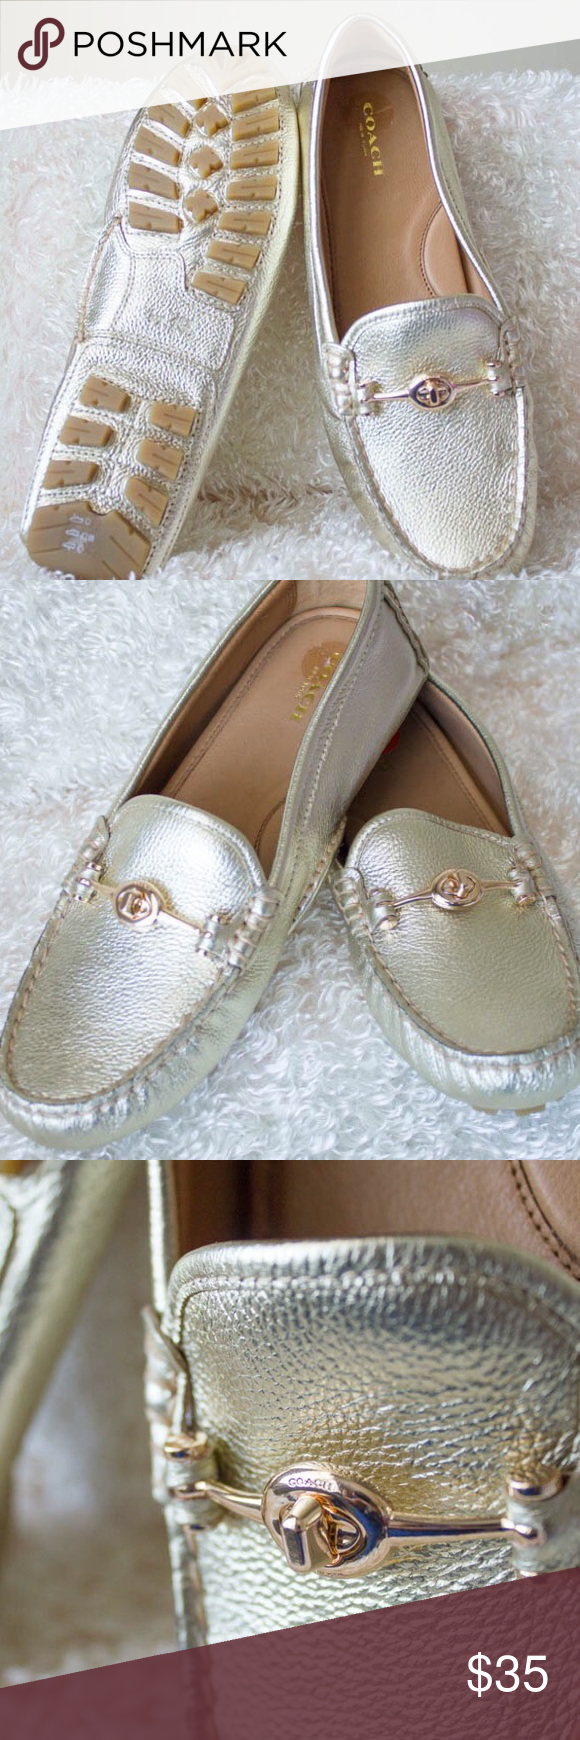 Coach Loafers *BRAND NEW* Never worn. Purchased by my husband as a gift...but in the wrong size. Coach Shoes Flats & Loafers